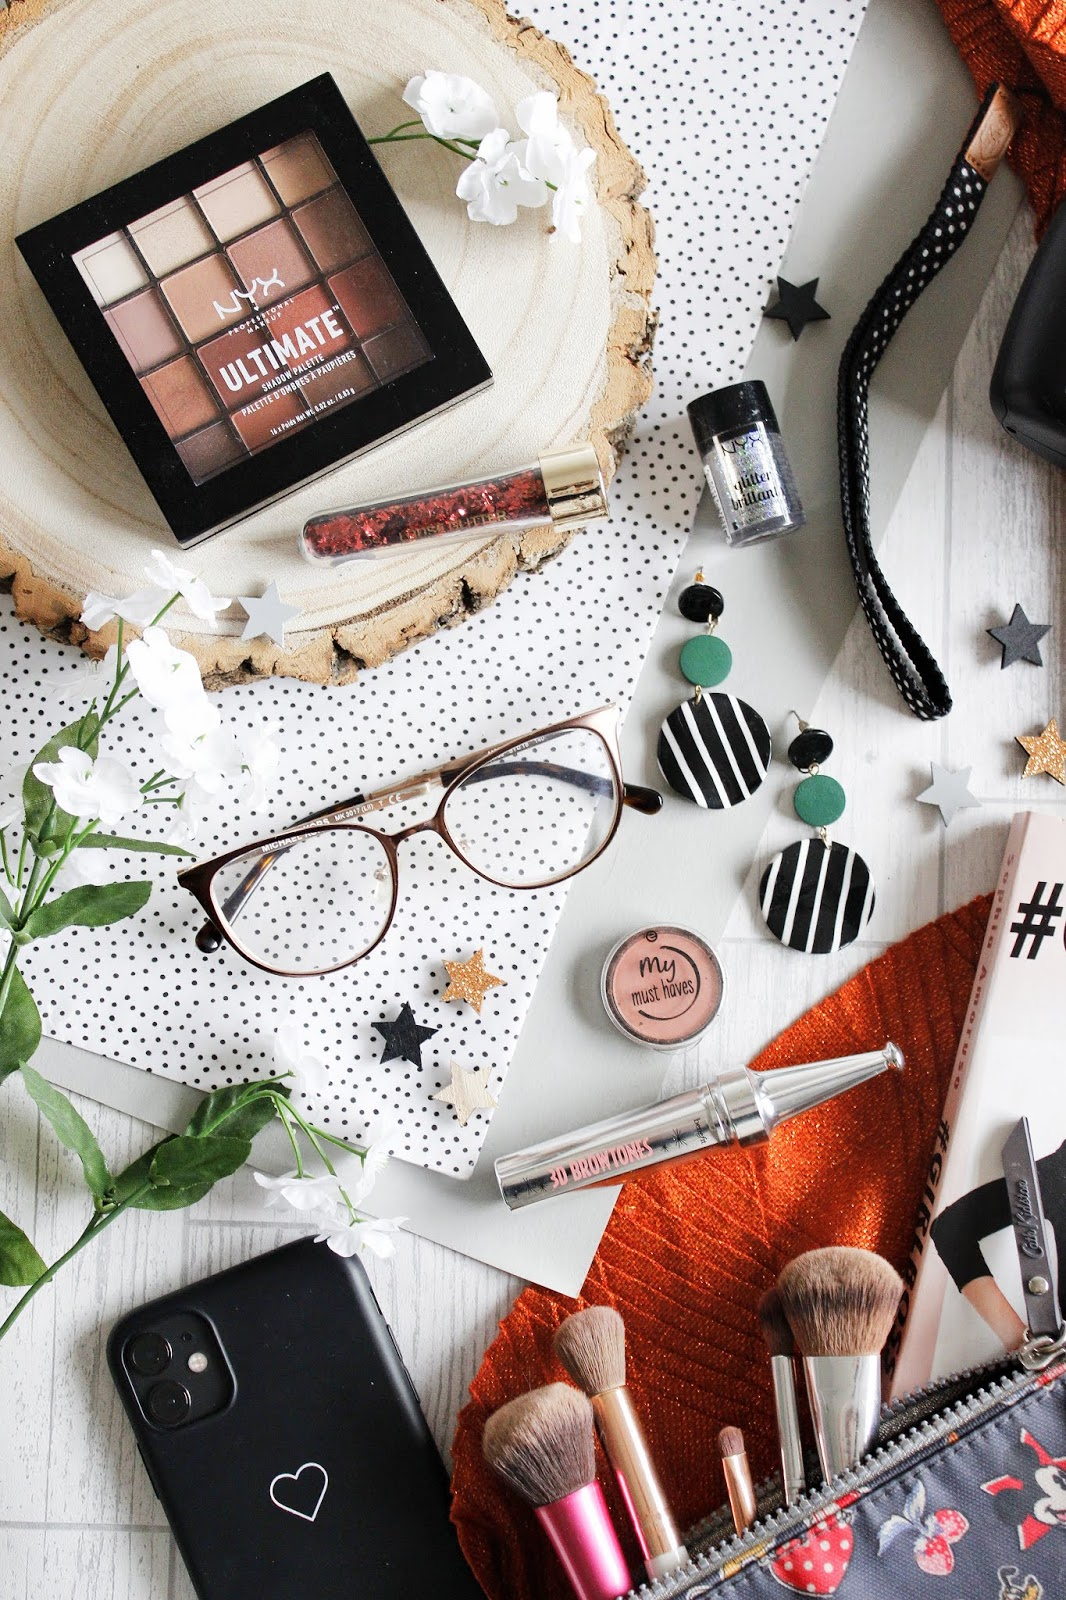 Creating makeup looks when wearing glasses - see the stars